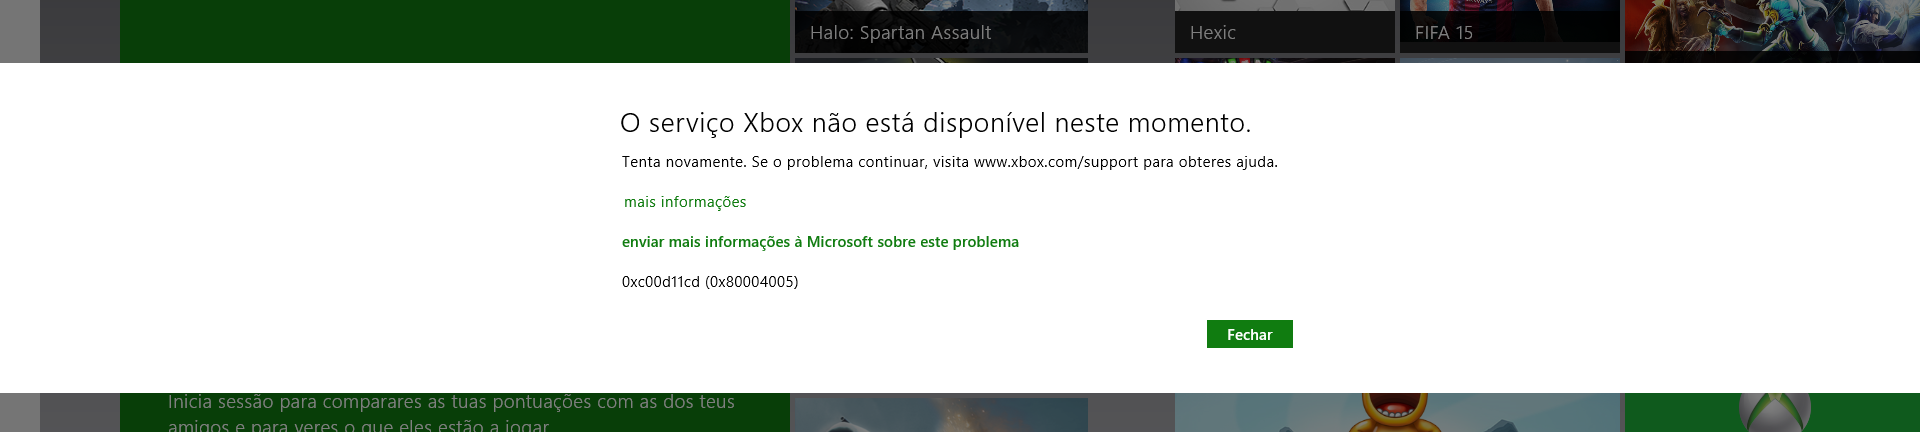 xbox one media player error 0xc00d11cd